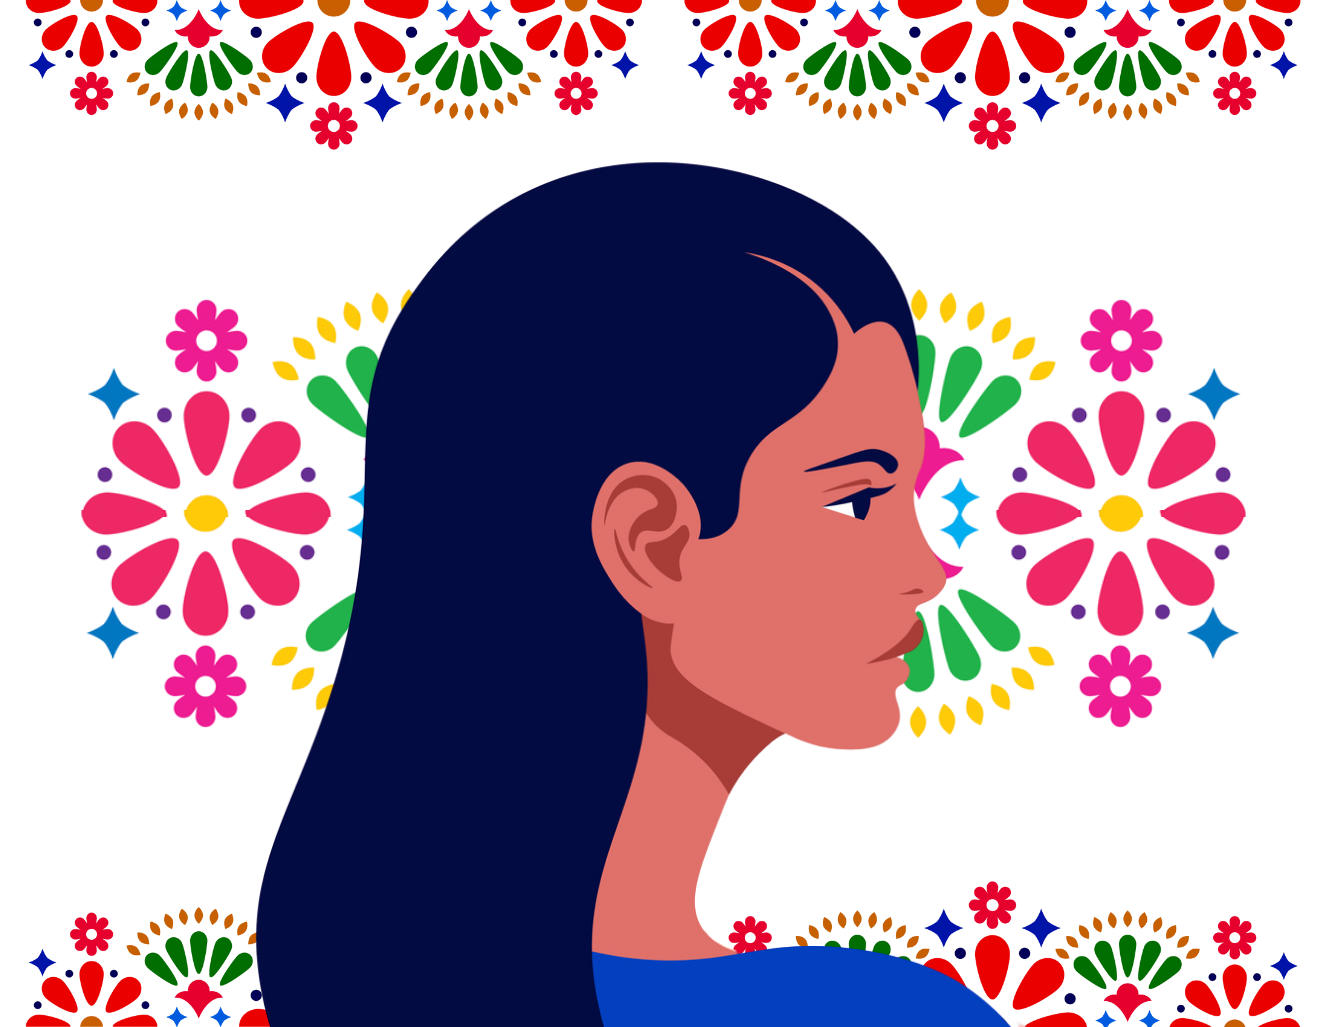 Latin American head in profile. Hispanic woman. Races and nationalities of the world. Vector flat illustration. Folk art pattern decor inspired by traditional art form Mexico on white background. concept: women in fintech, latinx